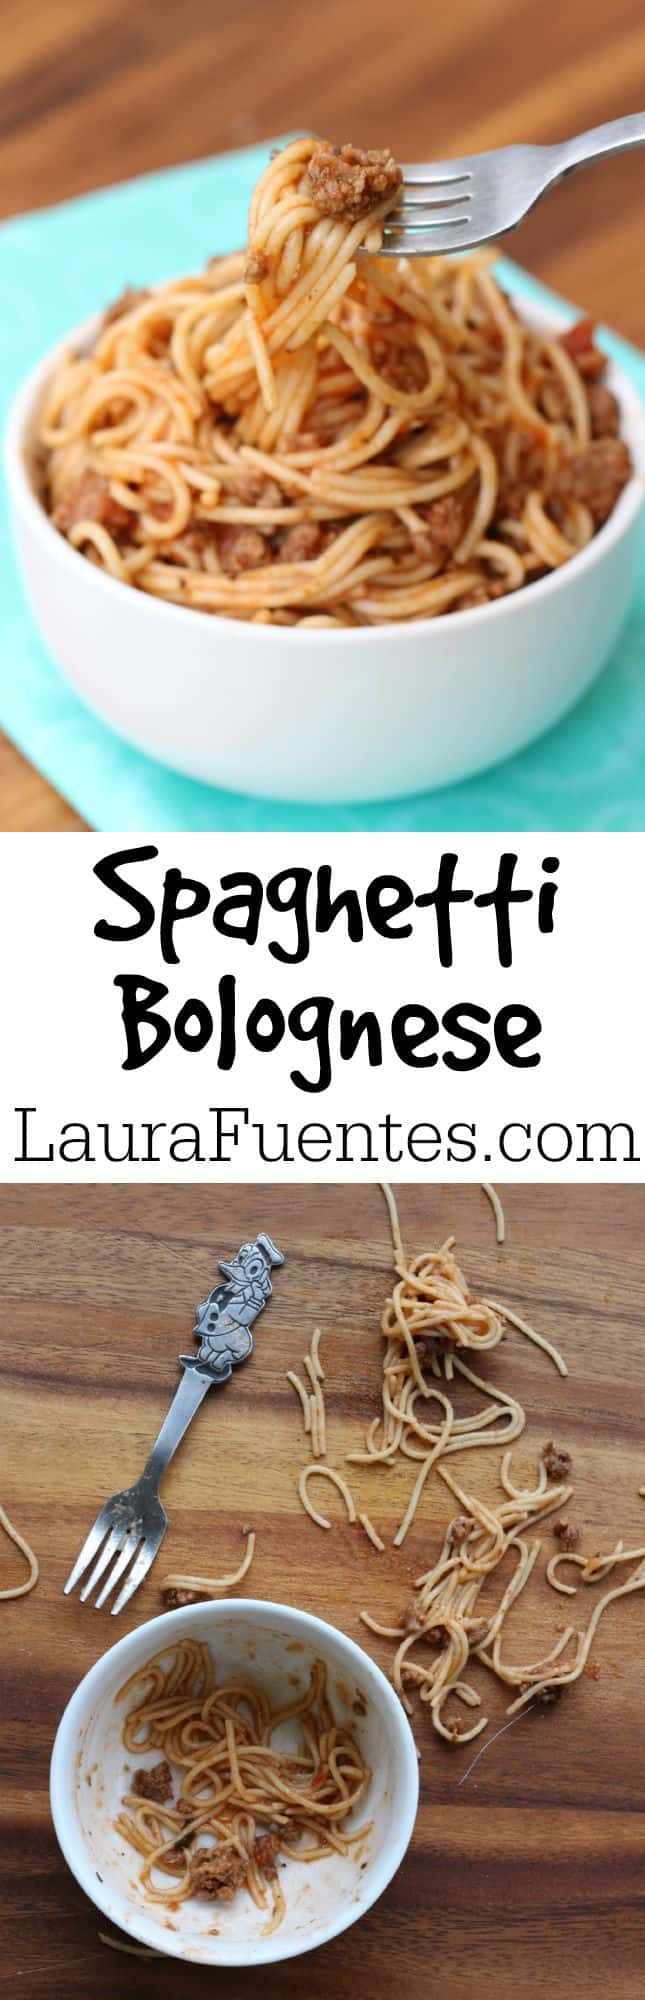 This is perhaps the best spaghetti bolognese recipe you'll ever have. One pot wonder that will leave you wishing you had doubled the recipe.